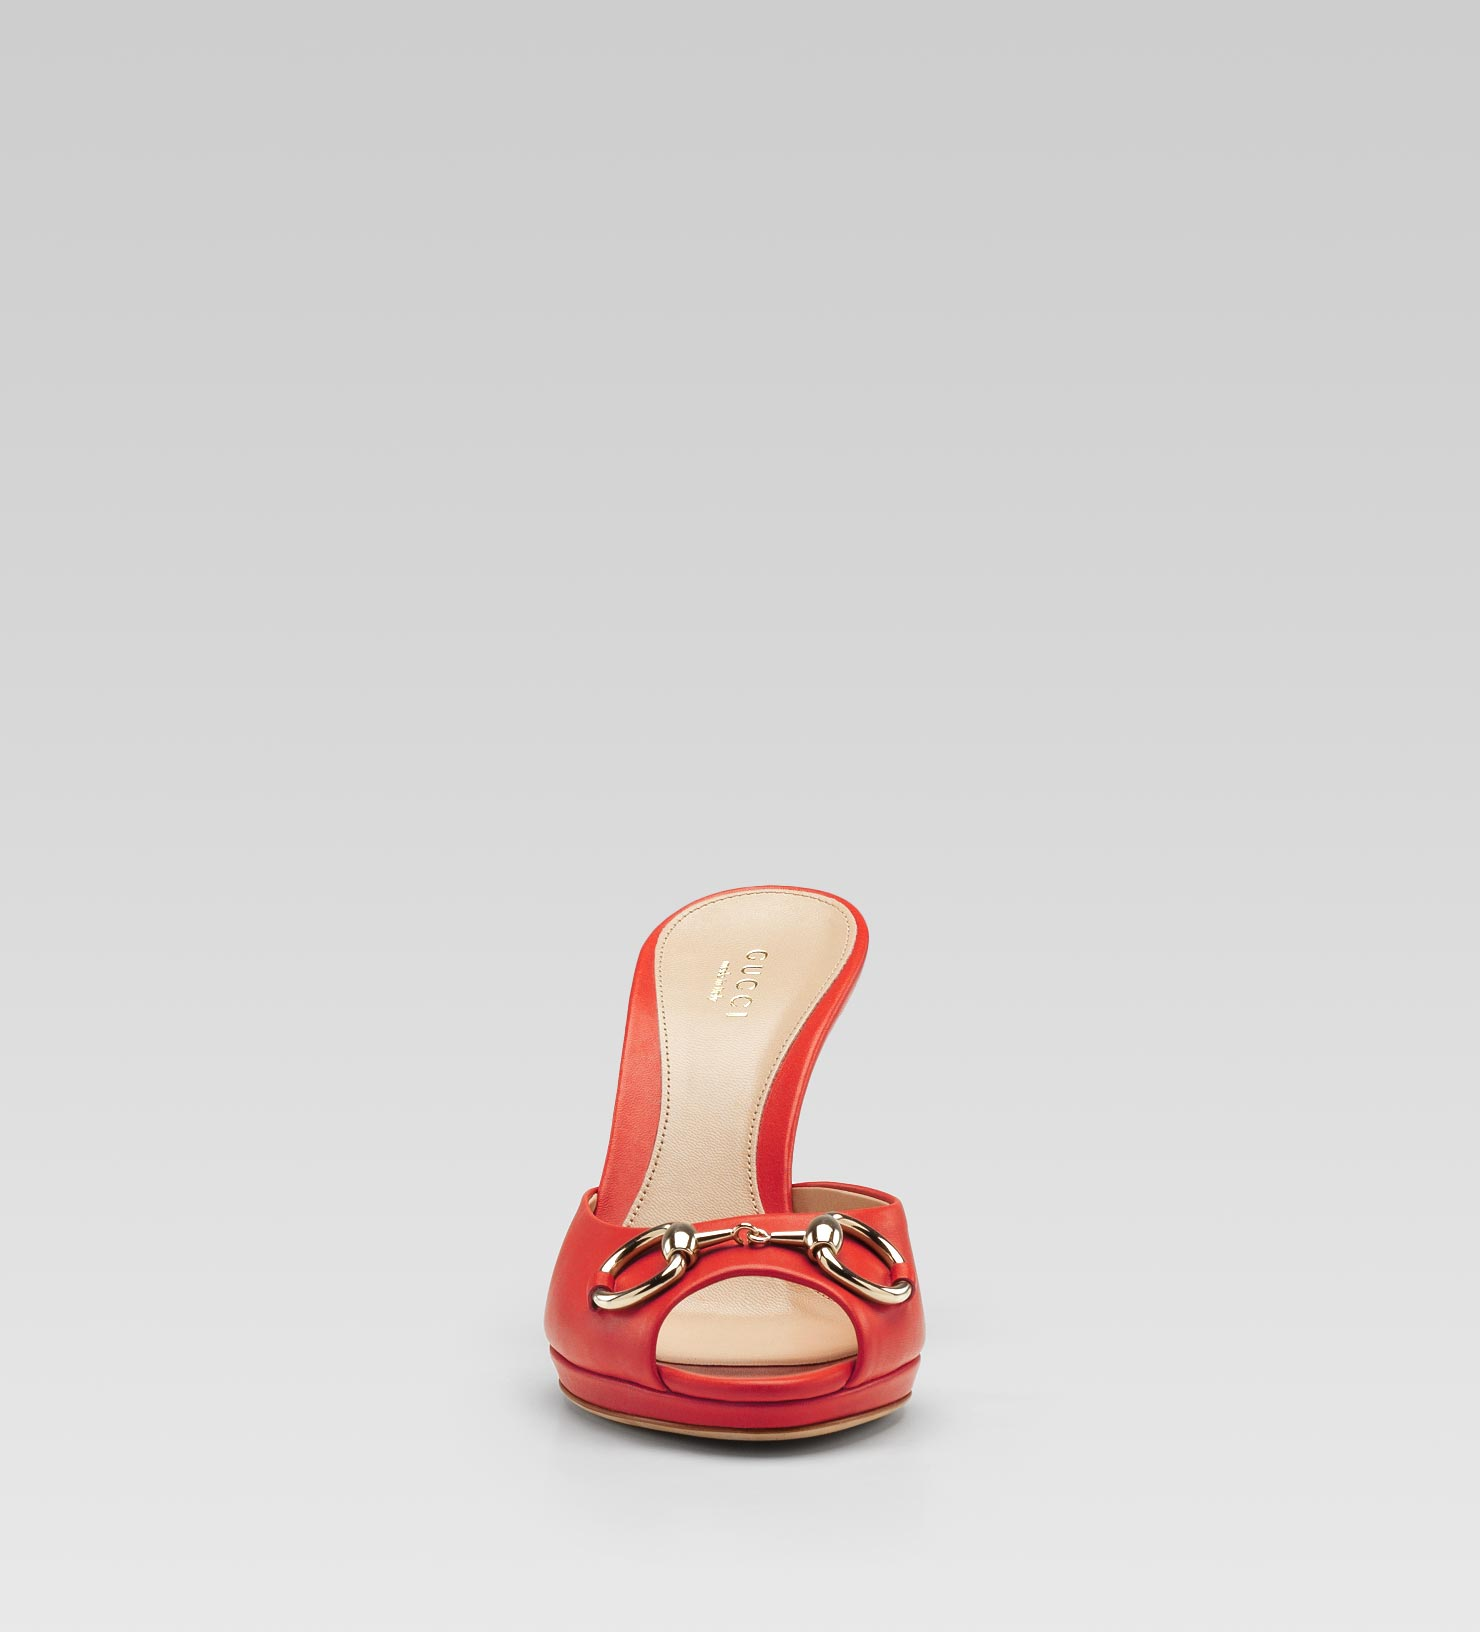 7c13288a37a Lyst - Gucci New Hollywood Horsebit Mid Heel Platform Slide in Red